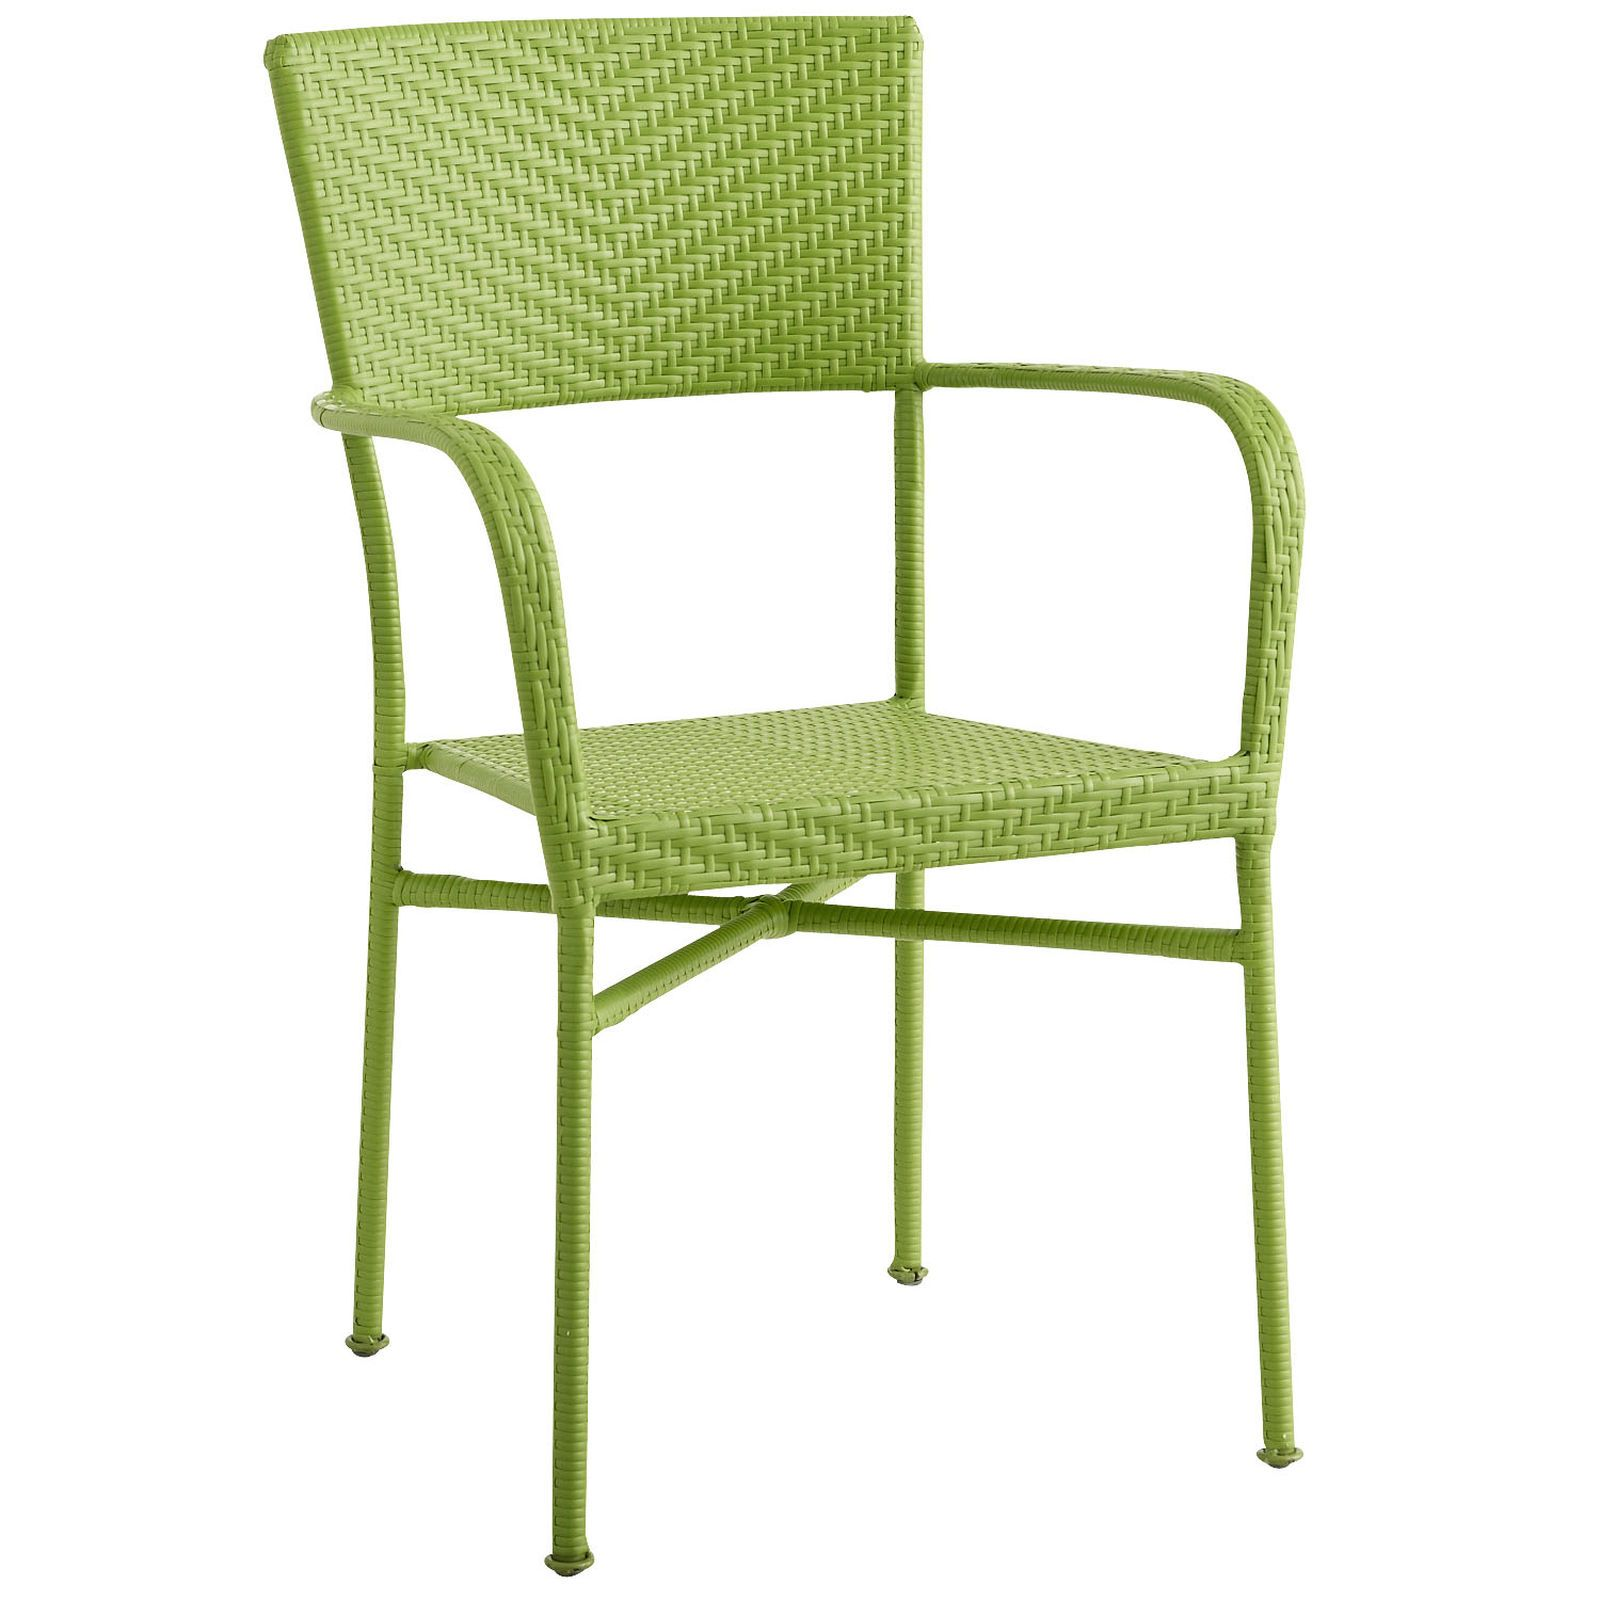 Del Rey Stacking Chair Outdoor Dining Chair Cushions Blue